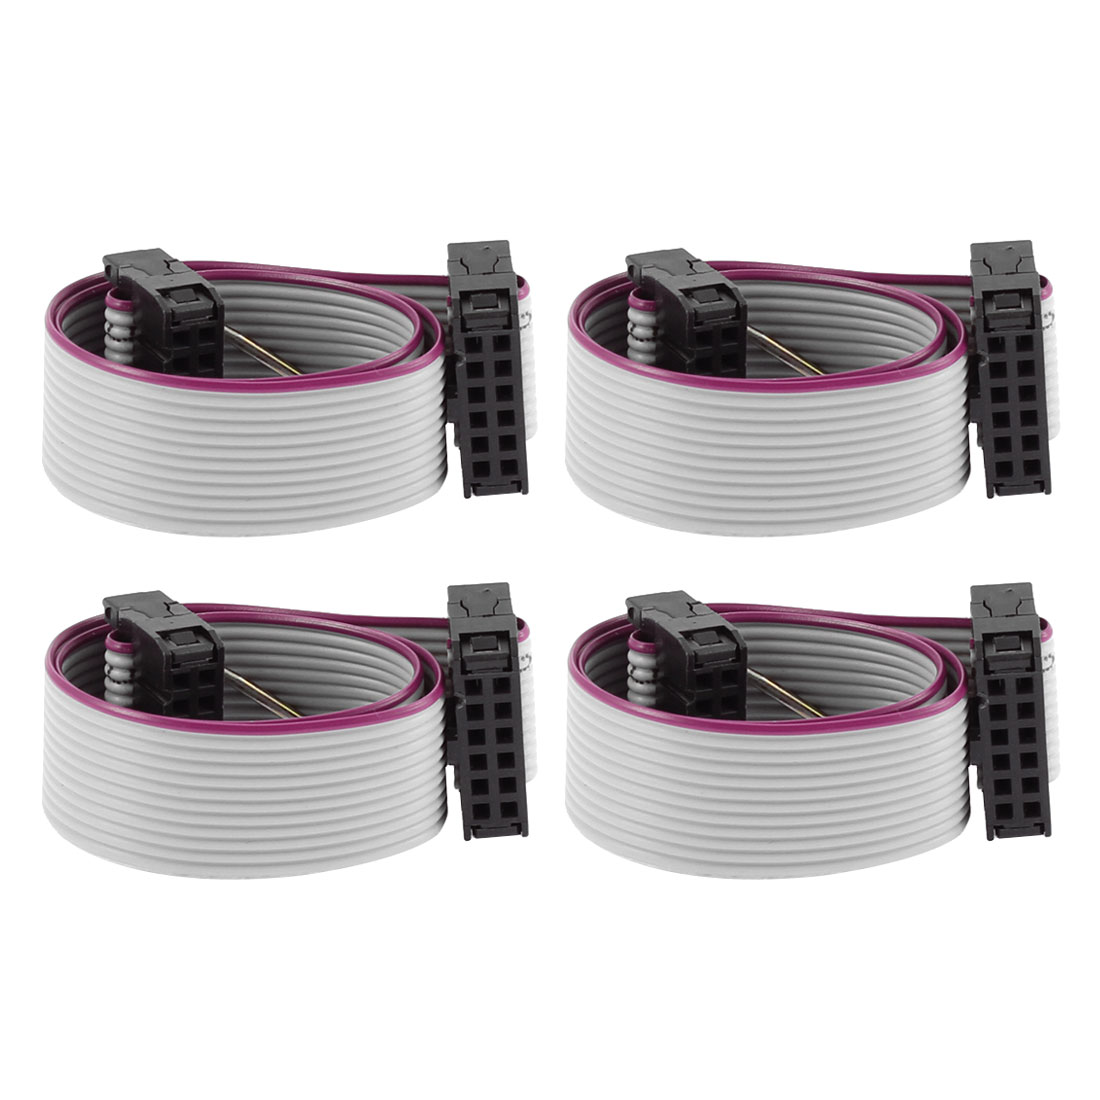 2.54mm Pitch 12 Pins 12 Wires F/F IDC Connector Flat Ribbon Cable 20cm 4pcs